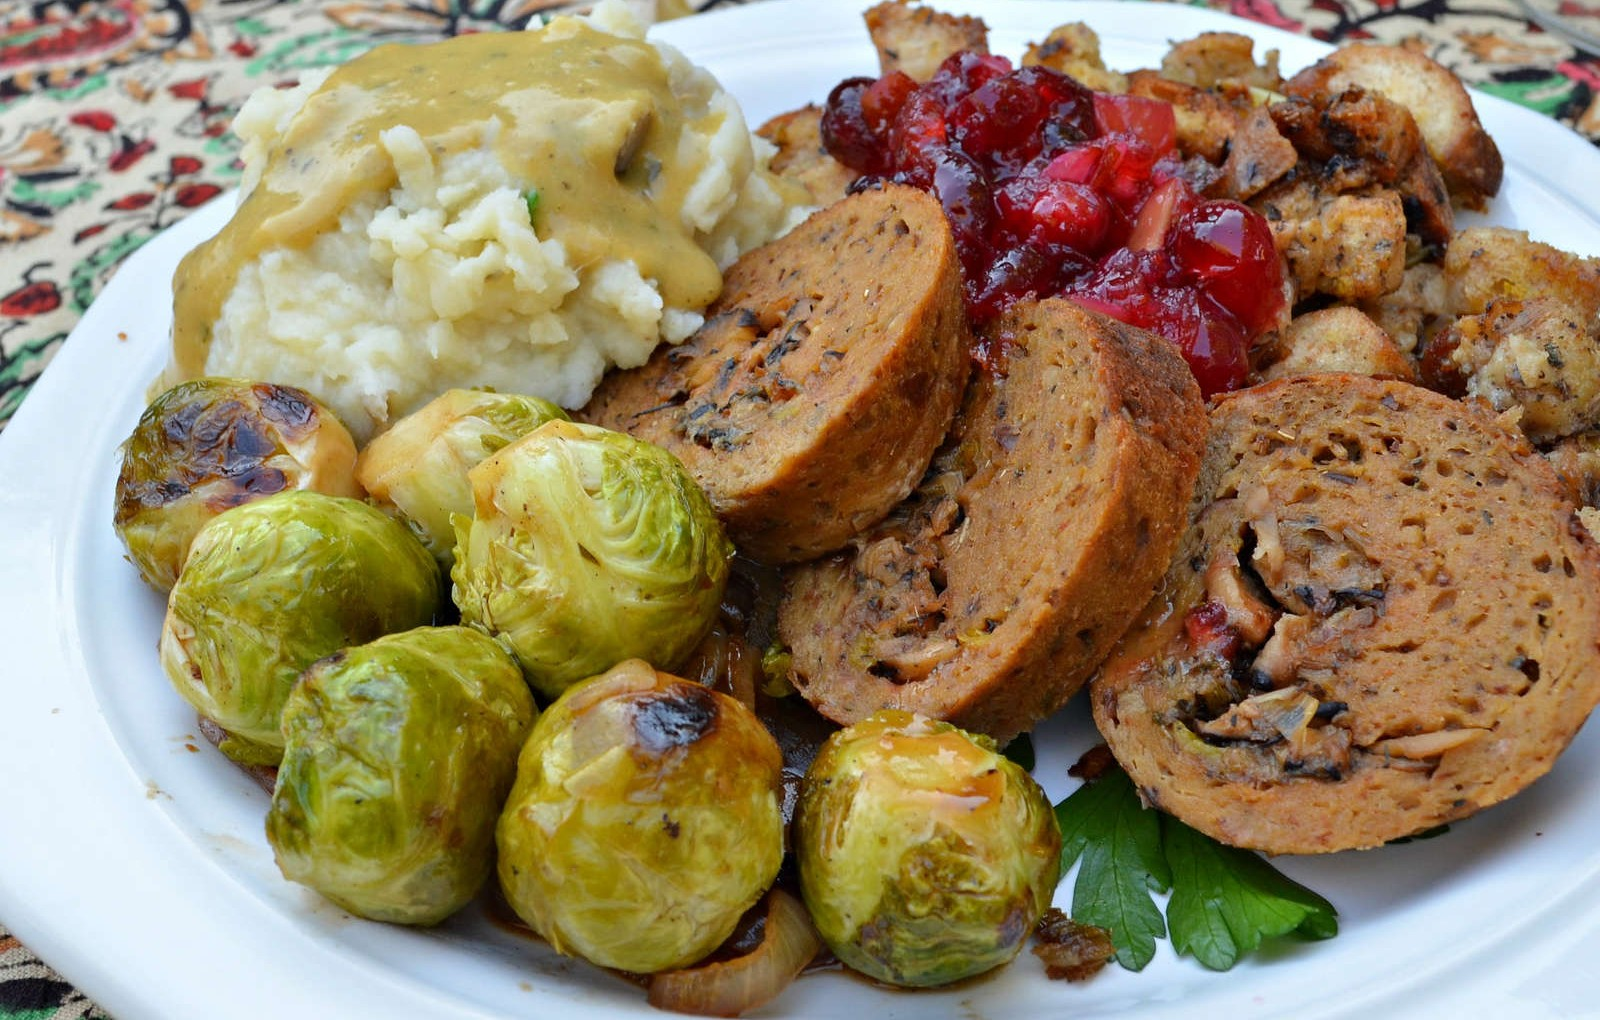 Recipes For The Ultimate Vegan Thanksgiving Menu From Meatless